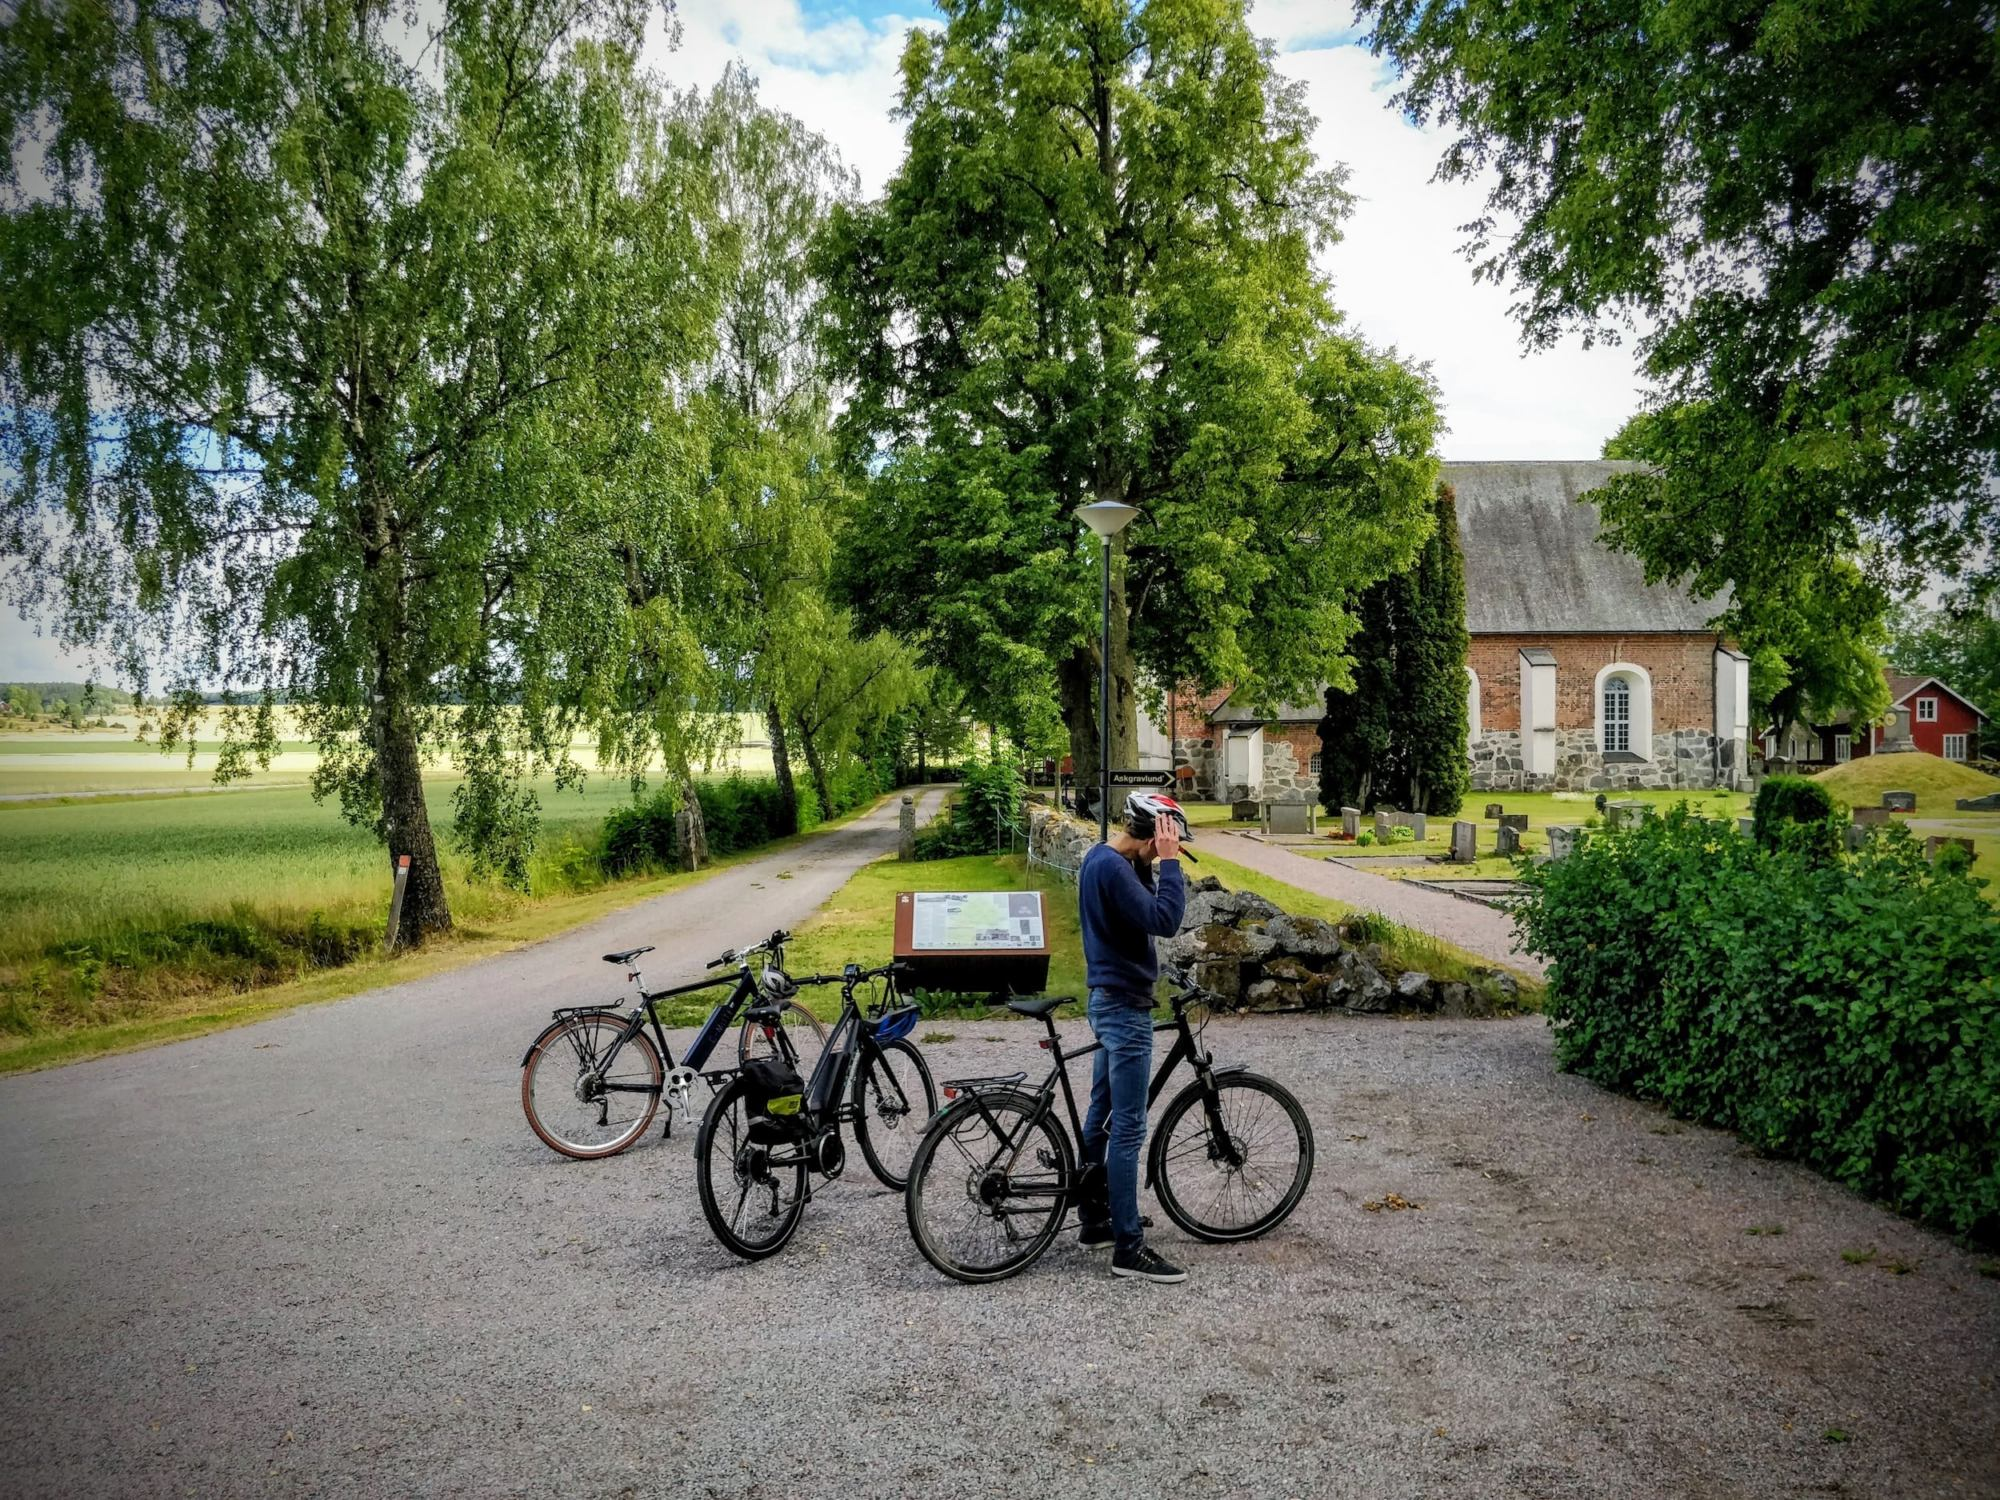 Bicycles parked in front of Nysätra church